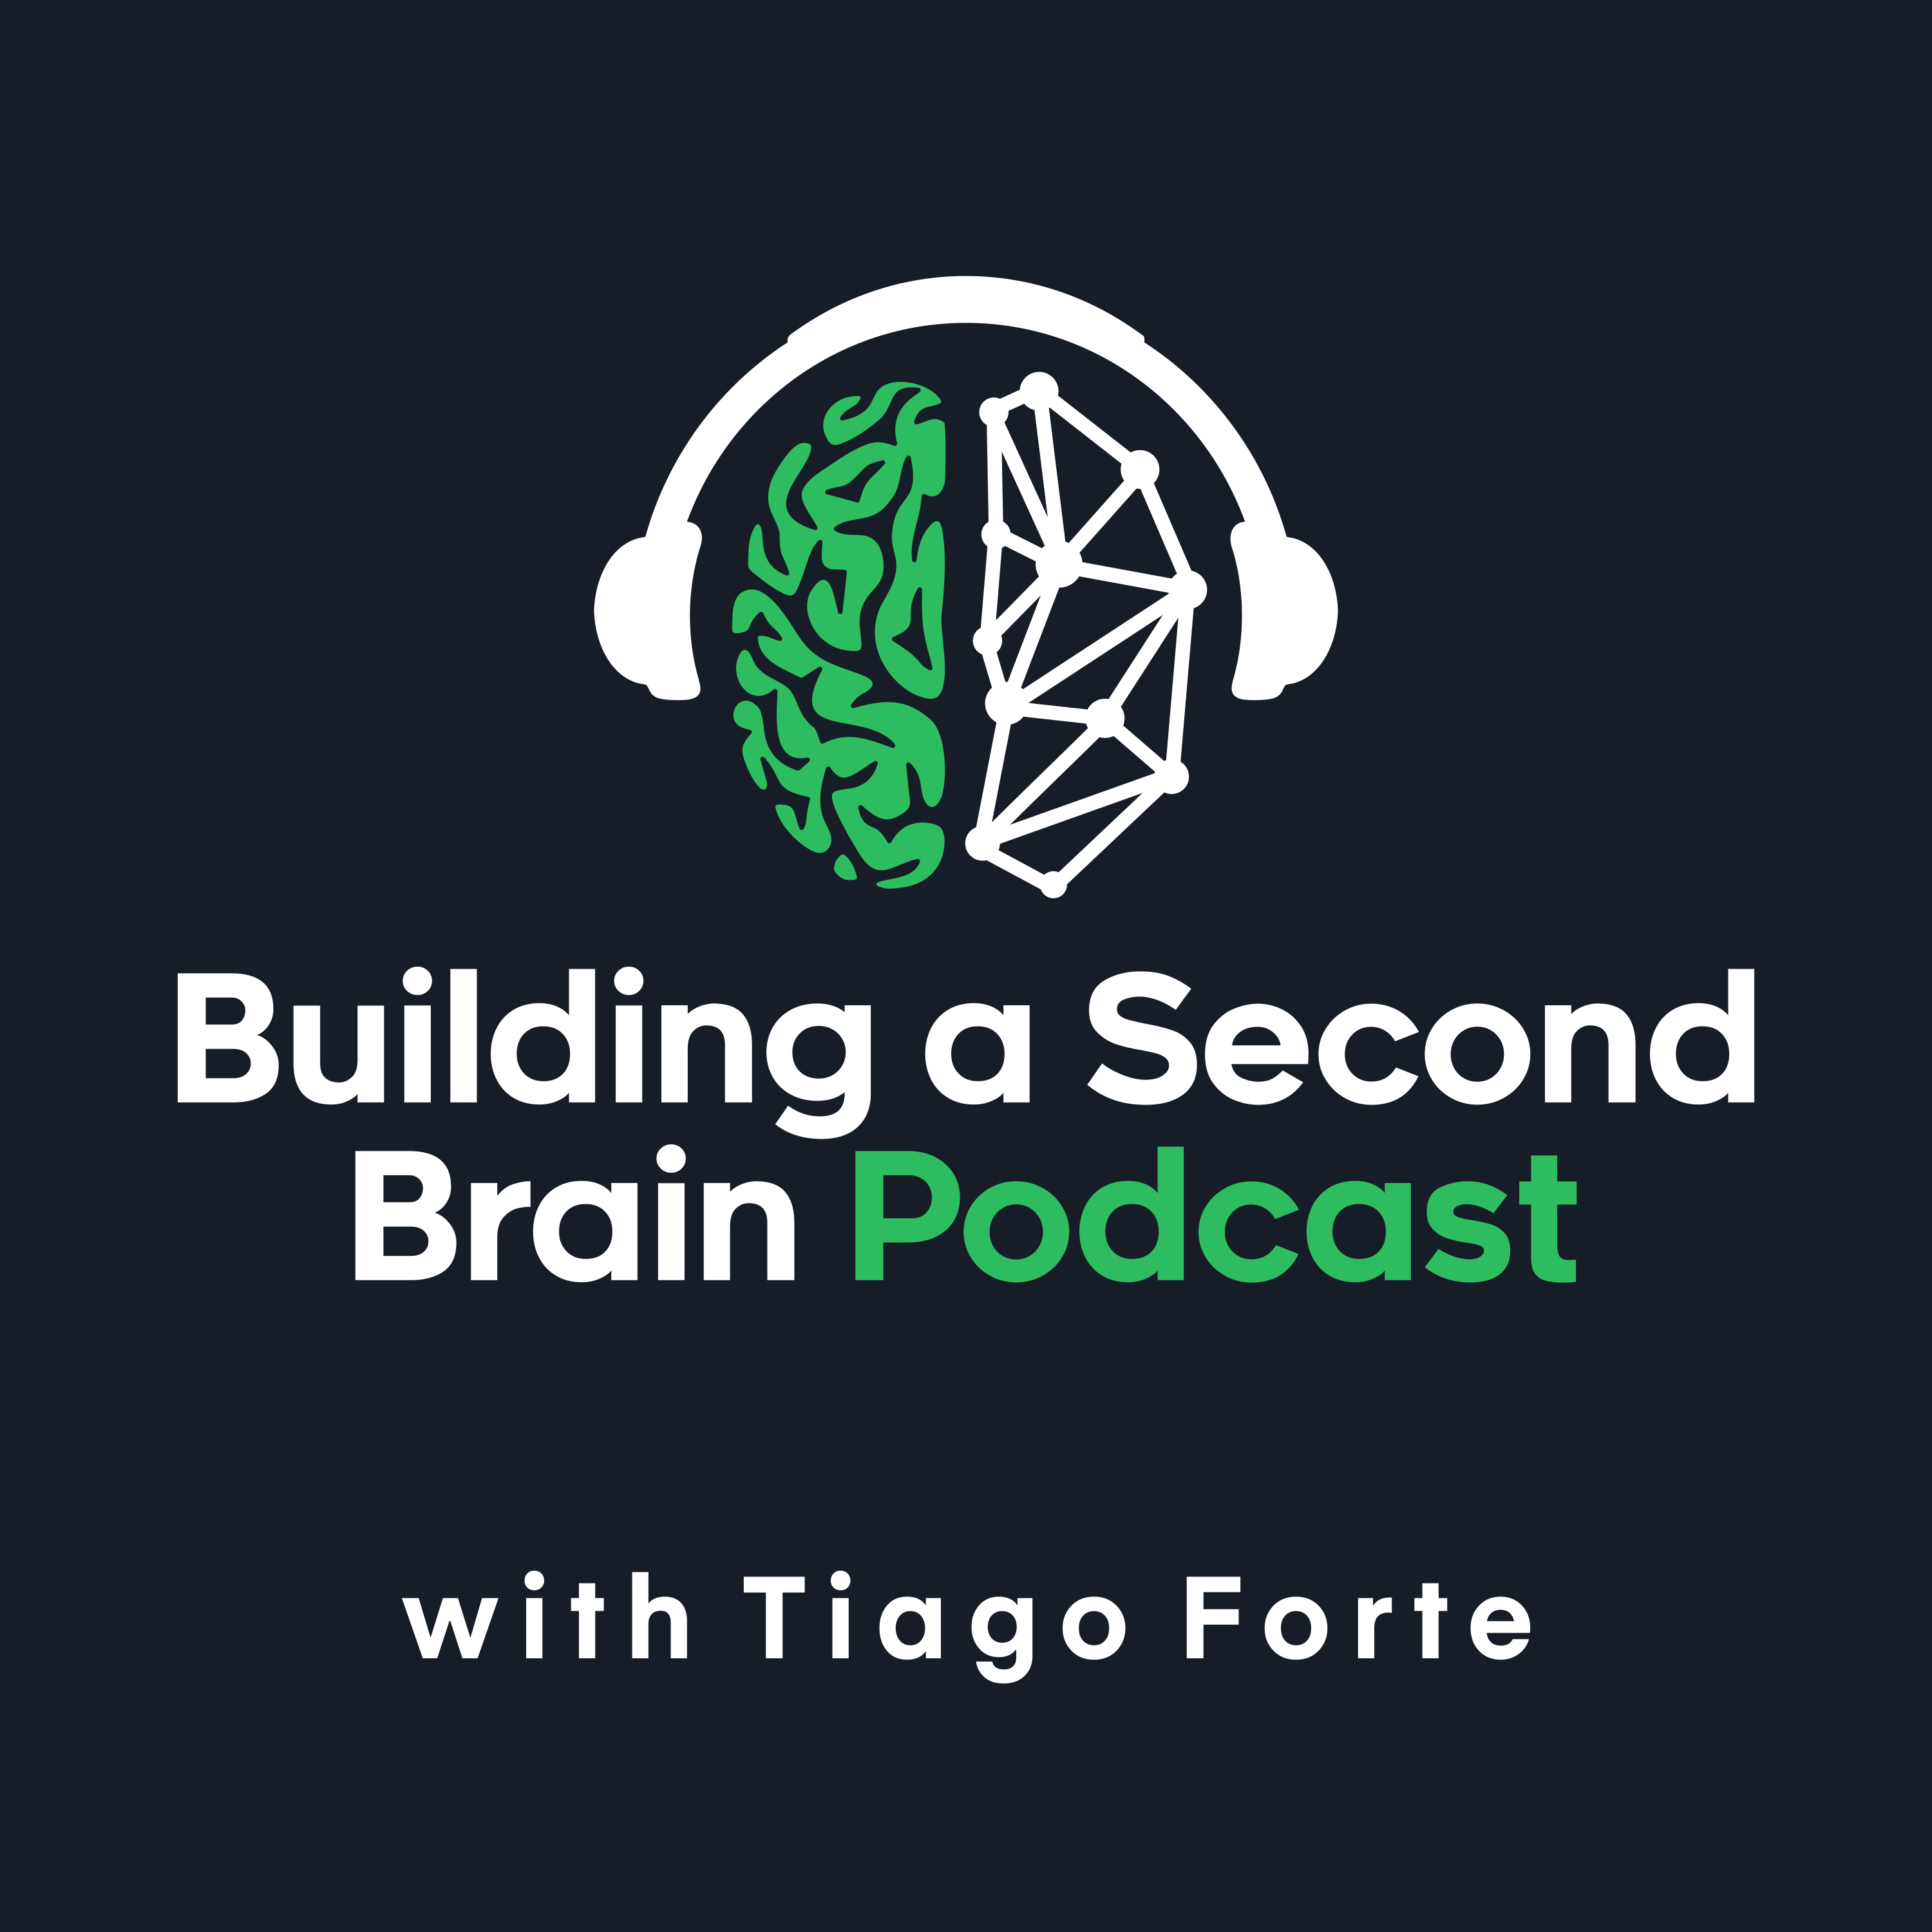 The Building a Second Brain Podcast